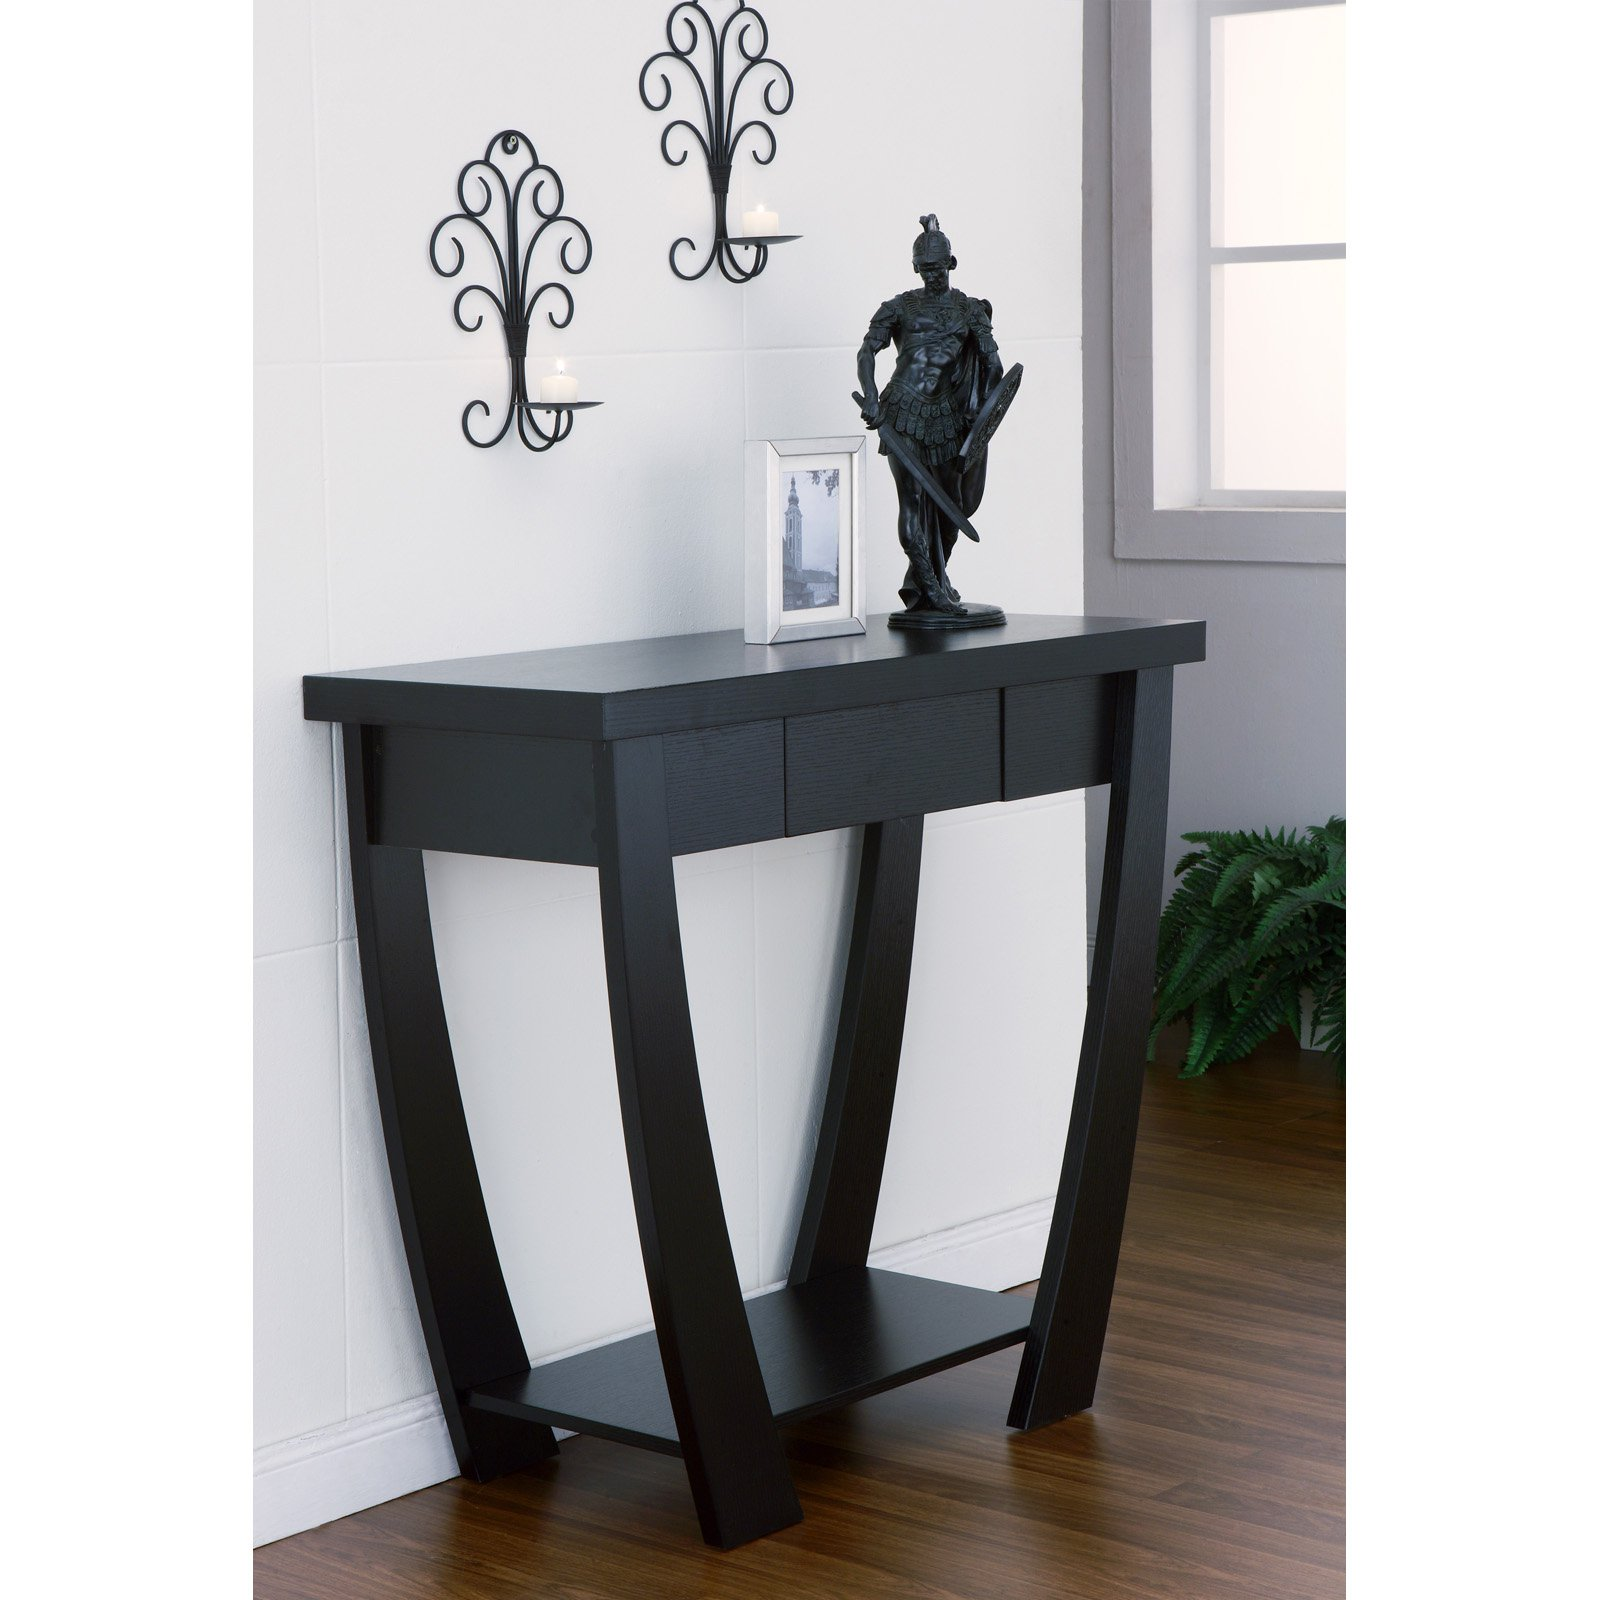 Furniture of America Shell Console Table